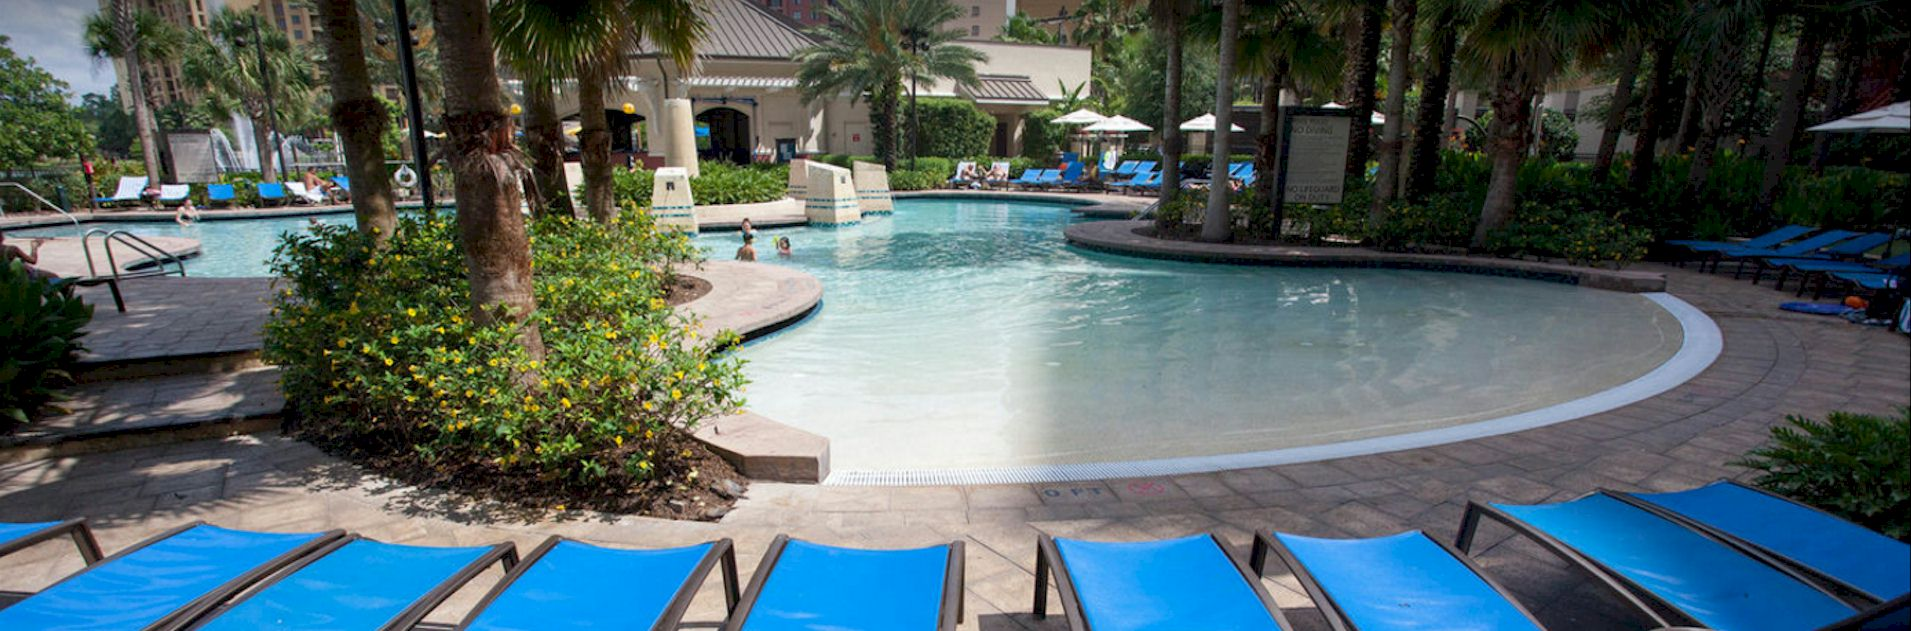 wyndham-bonnet-creek-vacation-resort-rental